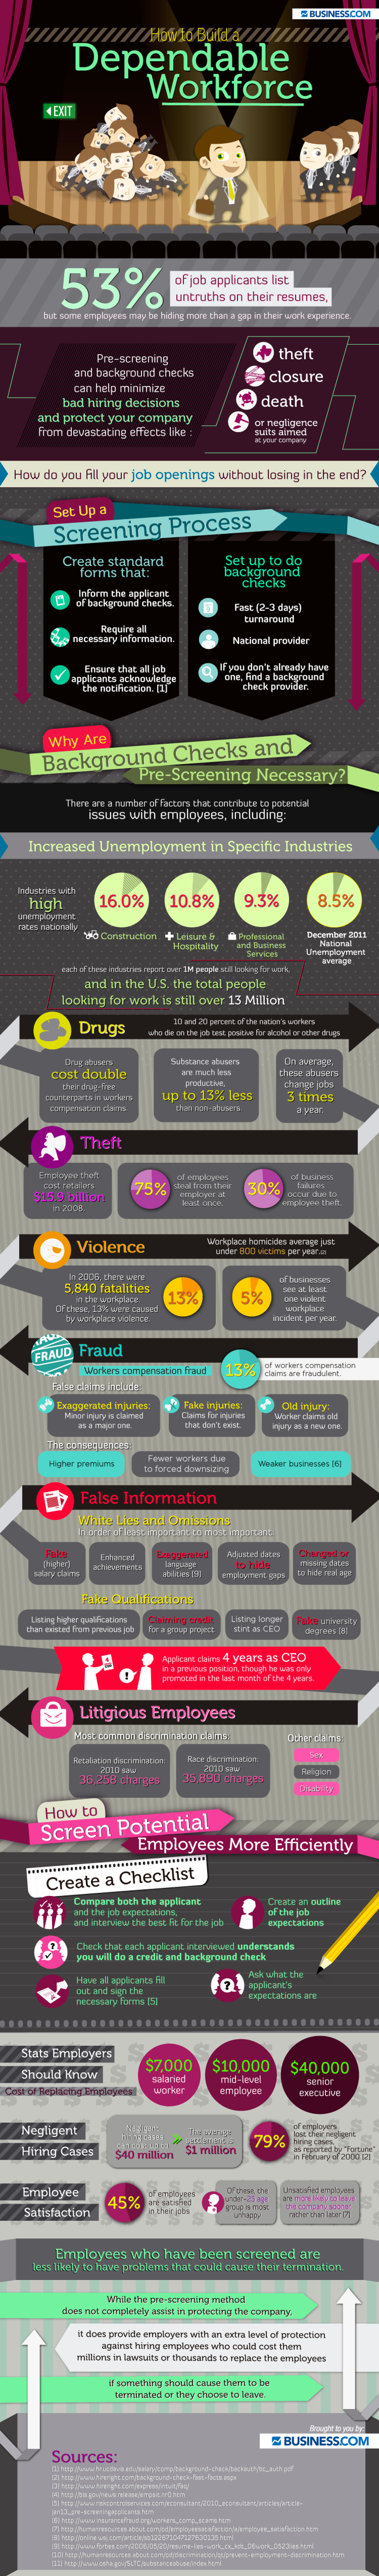 How to Build a Dependable Workforce: Using Background Checks Infographic